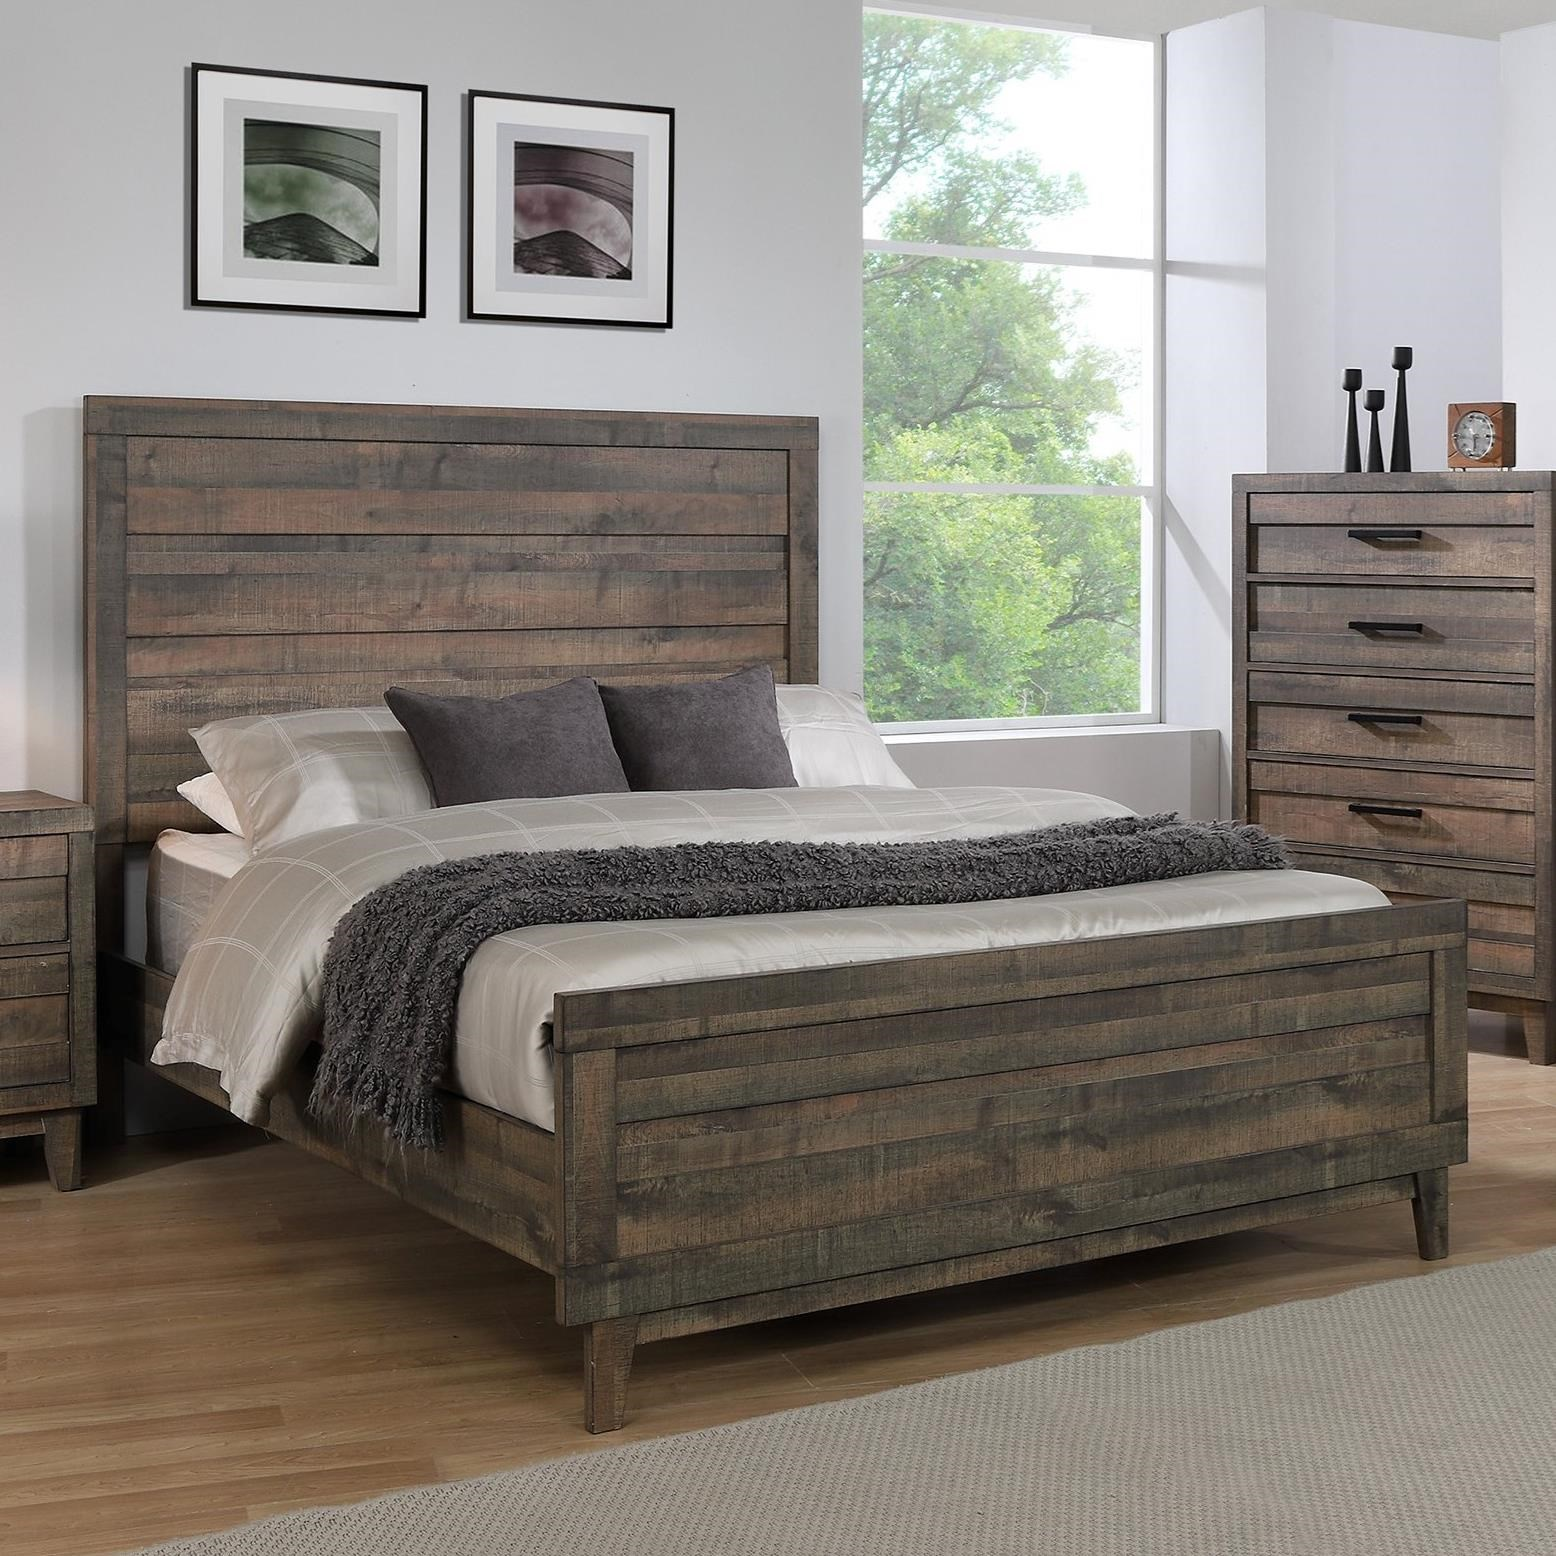 1085 Best Images About Bedroom Furniture On Pinterest: Crown Mark Tacoma Rustic Full Headboard And Footboard Bed